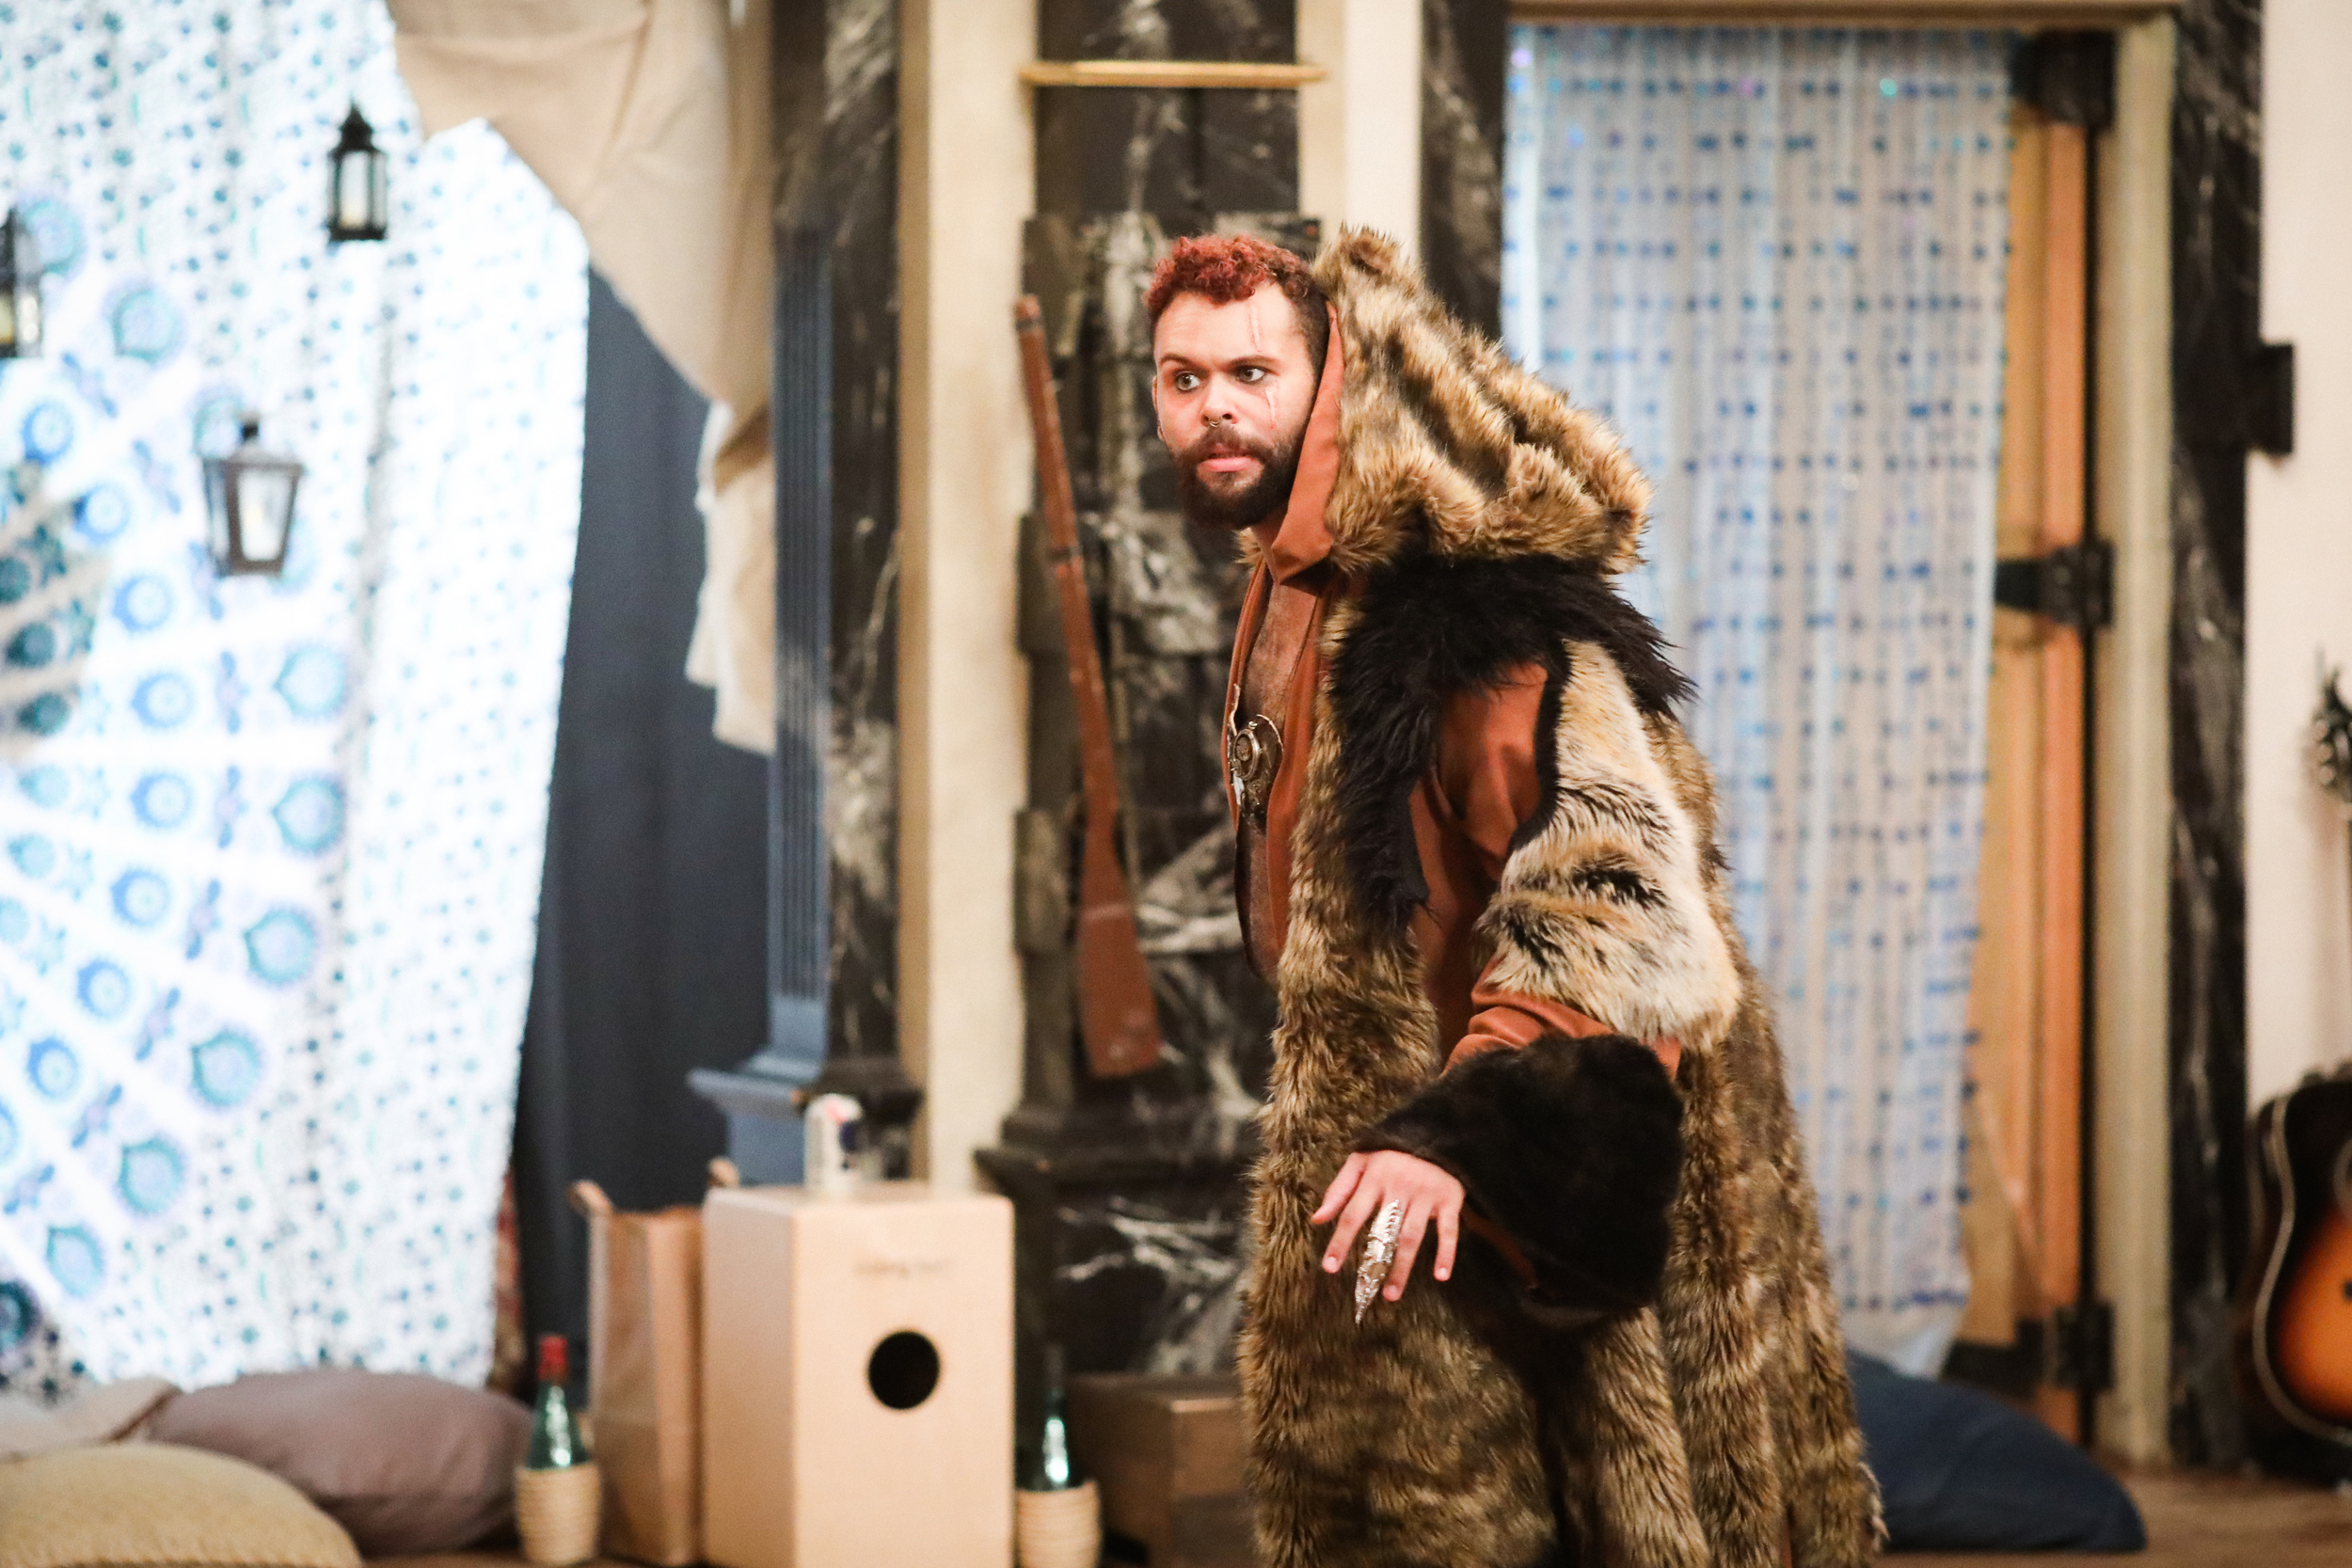 Topher Embrey in 16 Winters, or the Bear's Tale